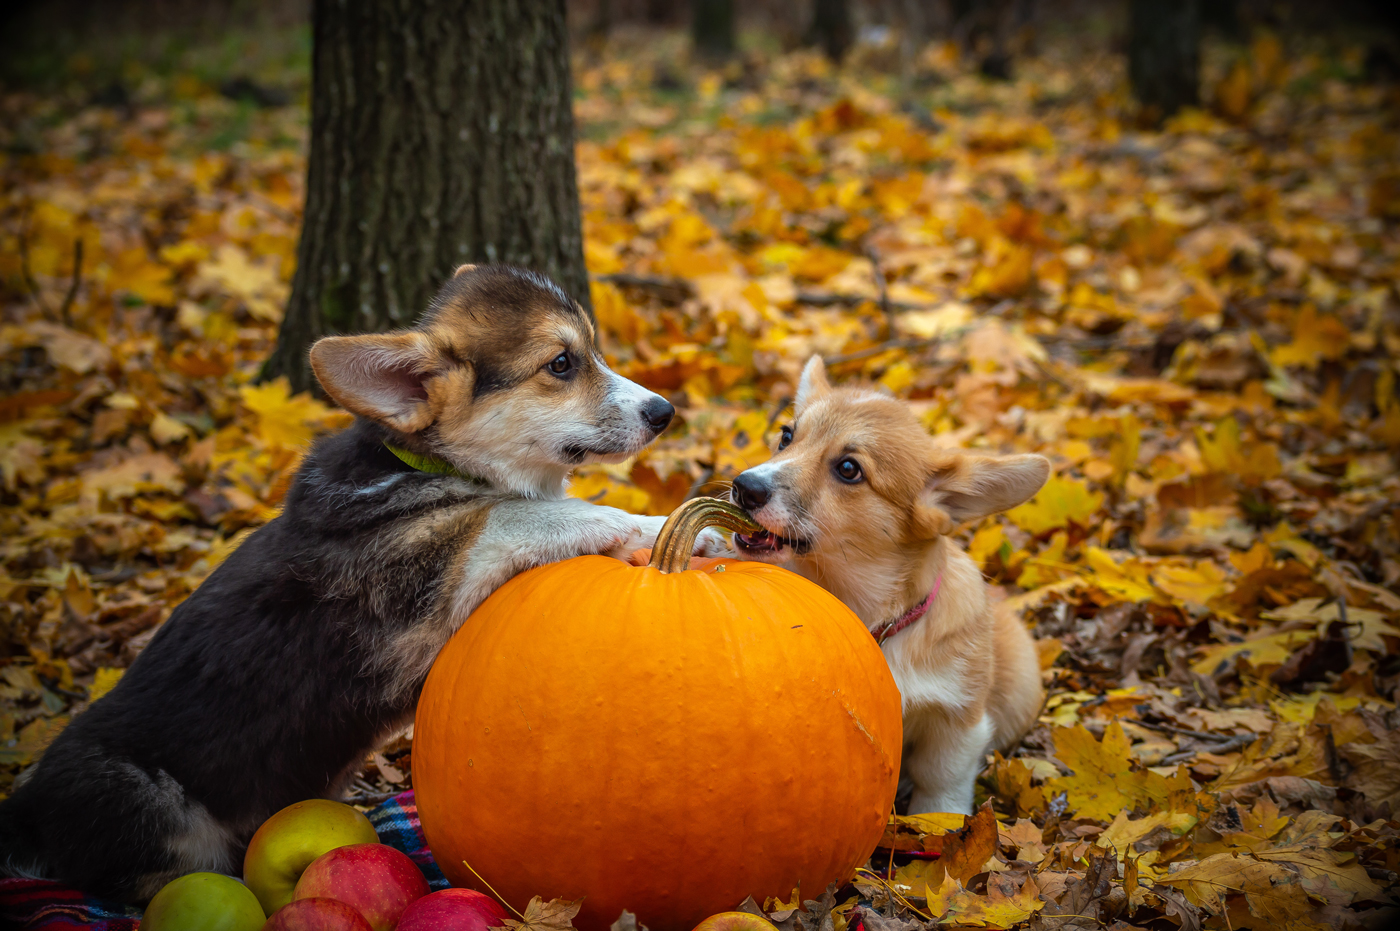 Two small dogs lying next to a pumpkin in a wooded area in autumn